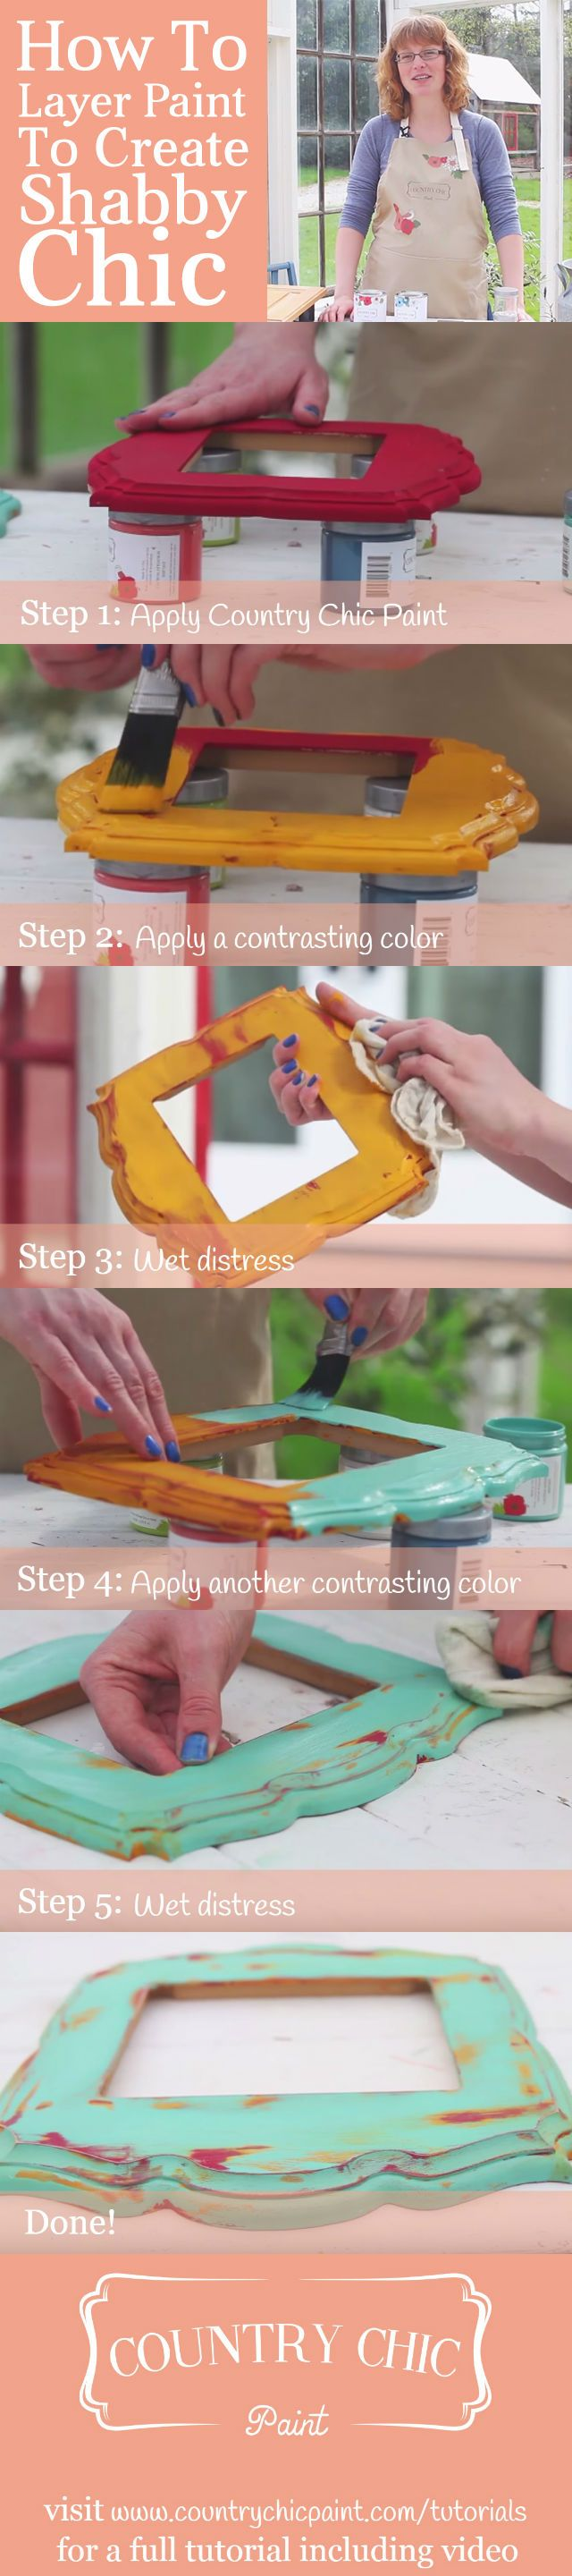 How to layer and distress furniture paint for a shabby chic finish | furniture painting tutorial #countrychicpaint - www.countrychicpaint.com/tutorials